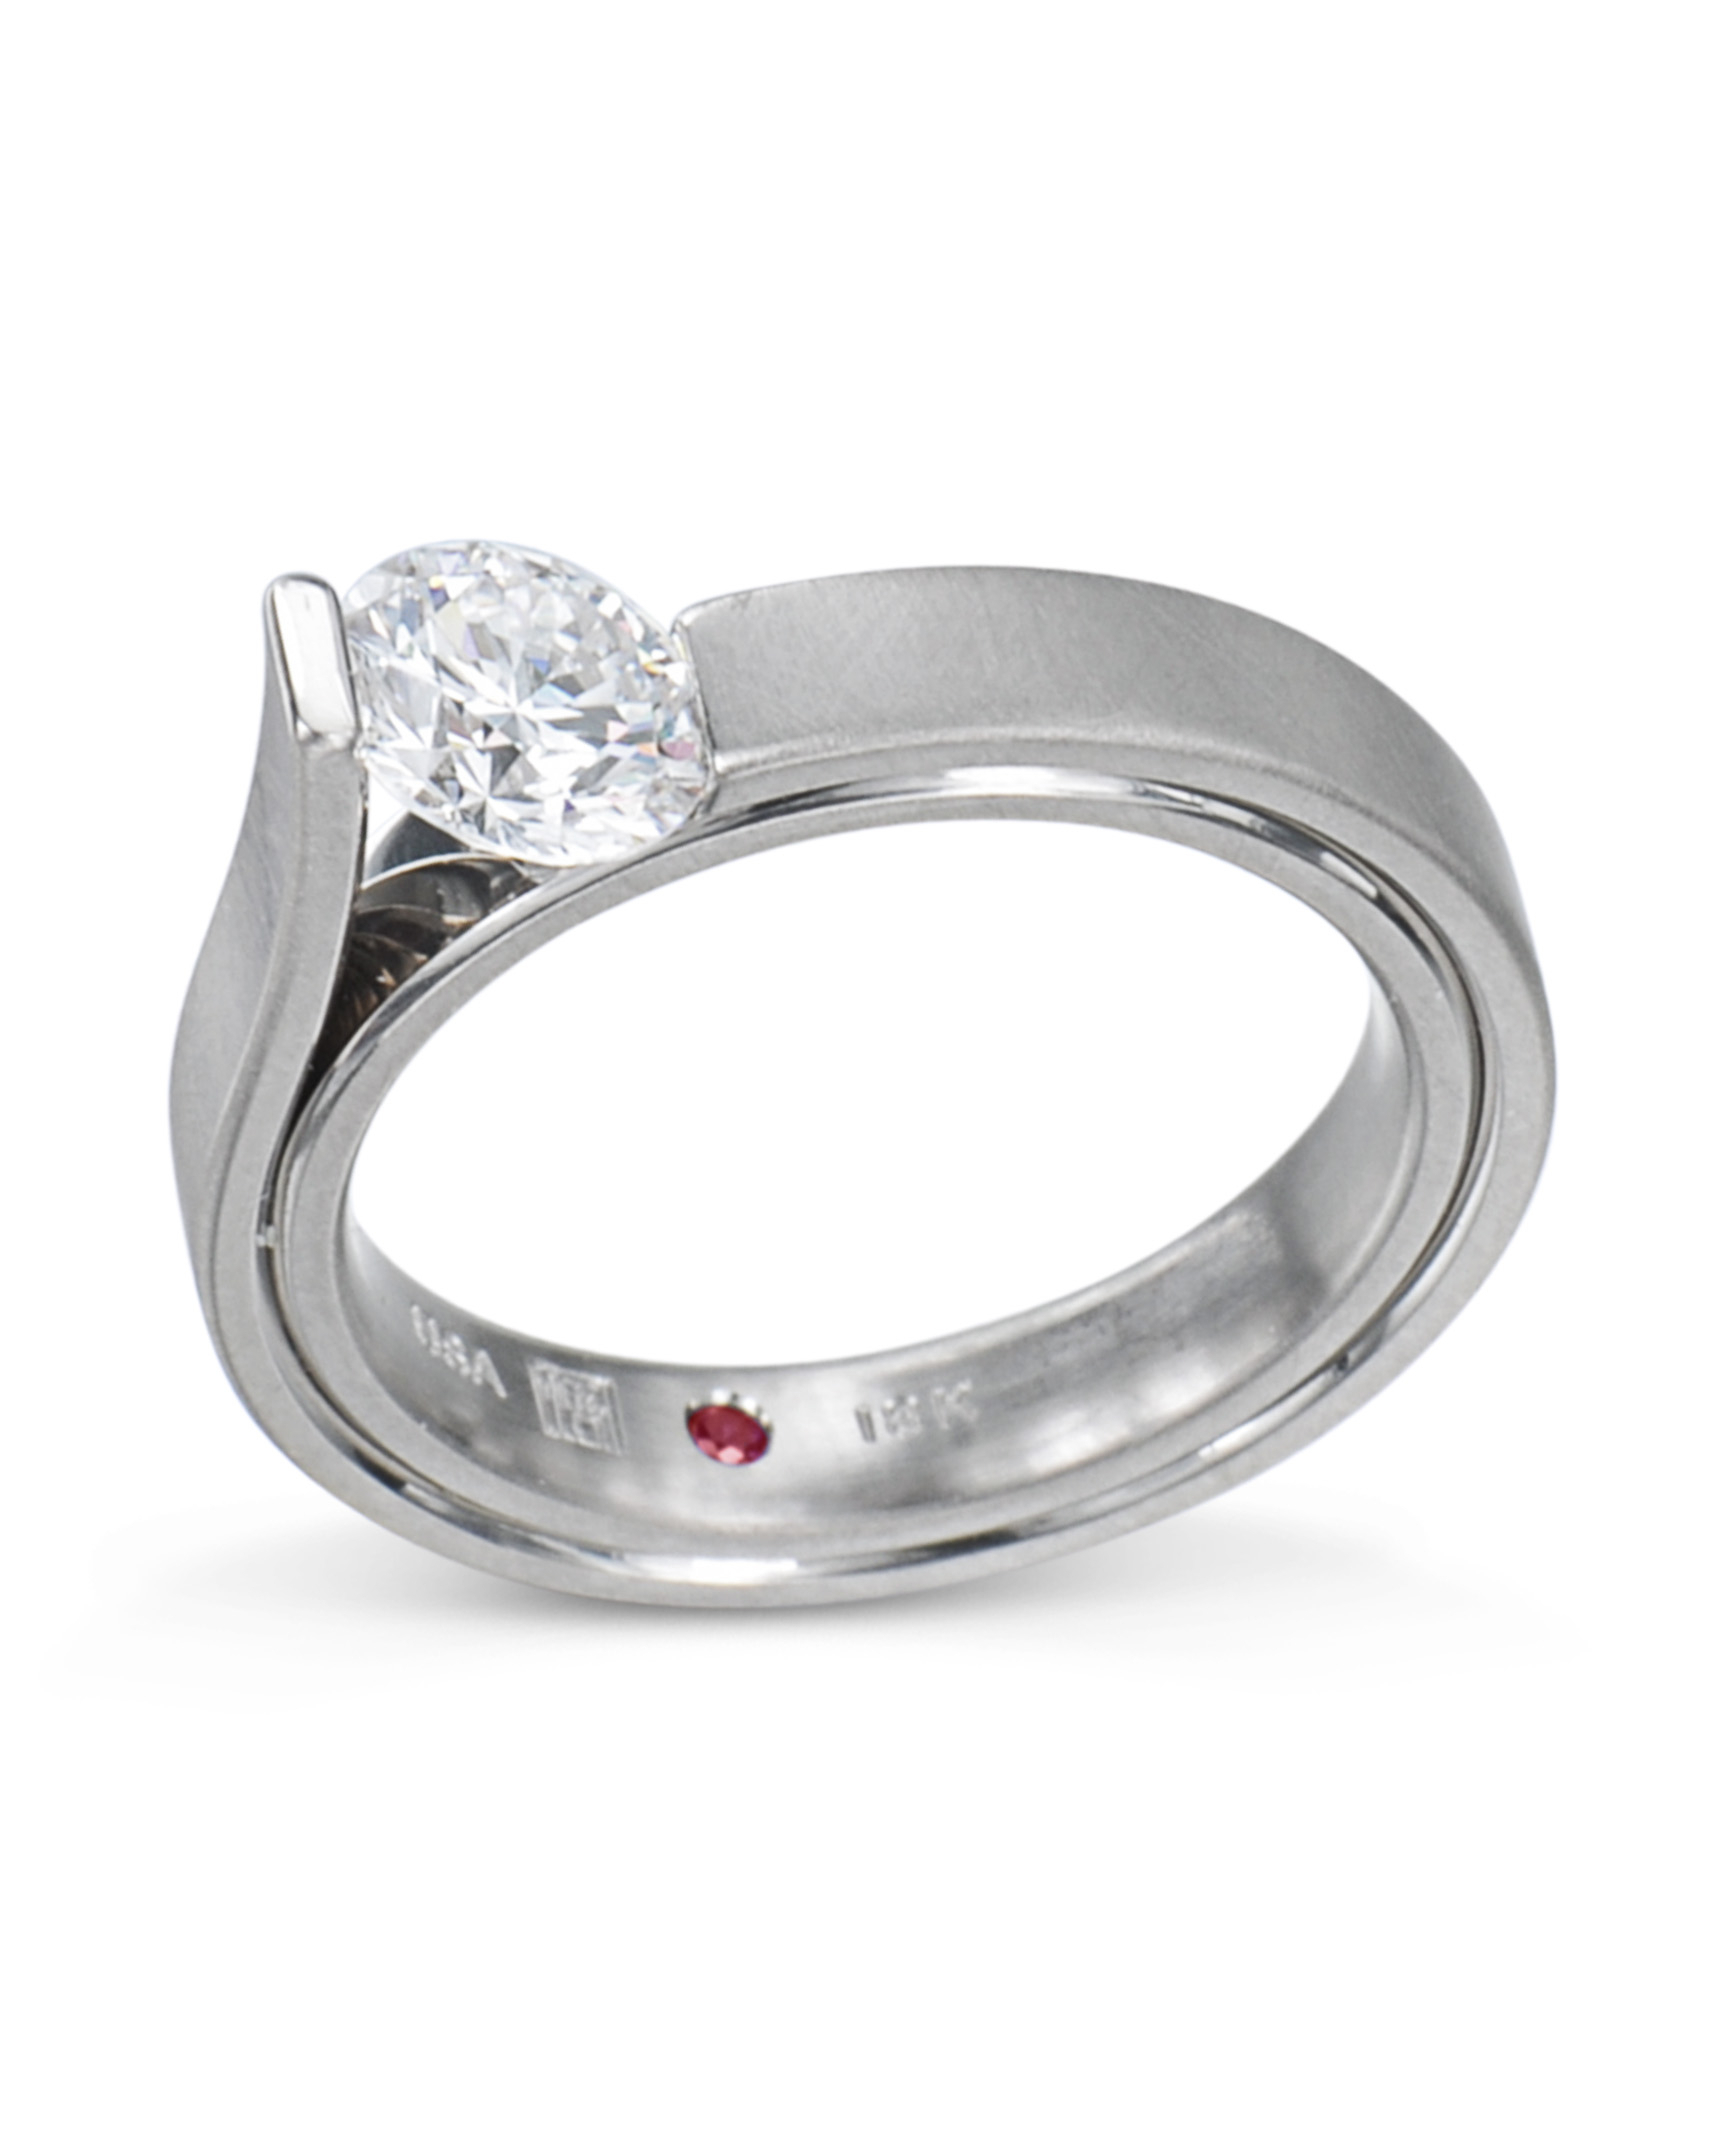 Grey Gold Slant Set Diamond Engagement Ring Throughout Most Current Diamond Slant Anniversary Bands In White Gold (View 9 of 25)